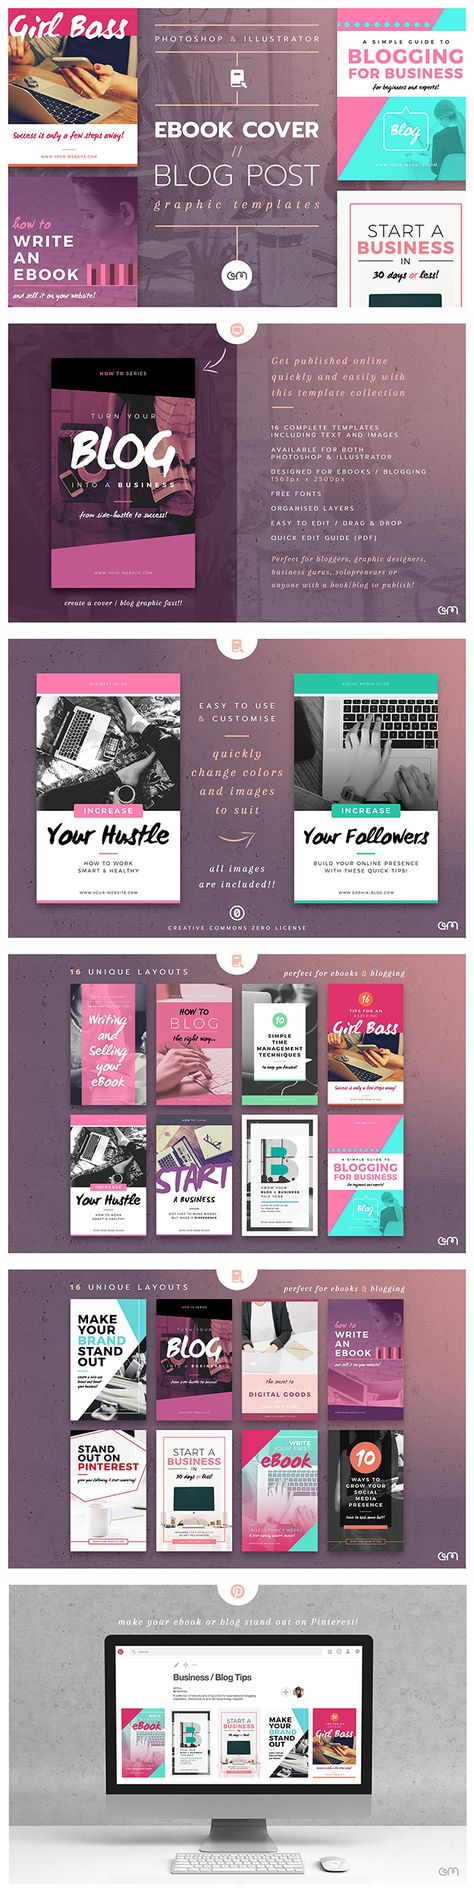 Ebook Cover // Blog Post Graphic Templates - 16 easy to edit, fully customisable Ebook Cover / Blog Post templates, created in both Photoshop & Illustrator and optimised for use in downloadable Ebook format or high quality Blog Posts graphics.